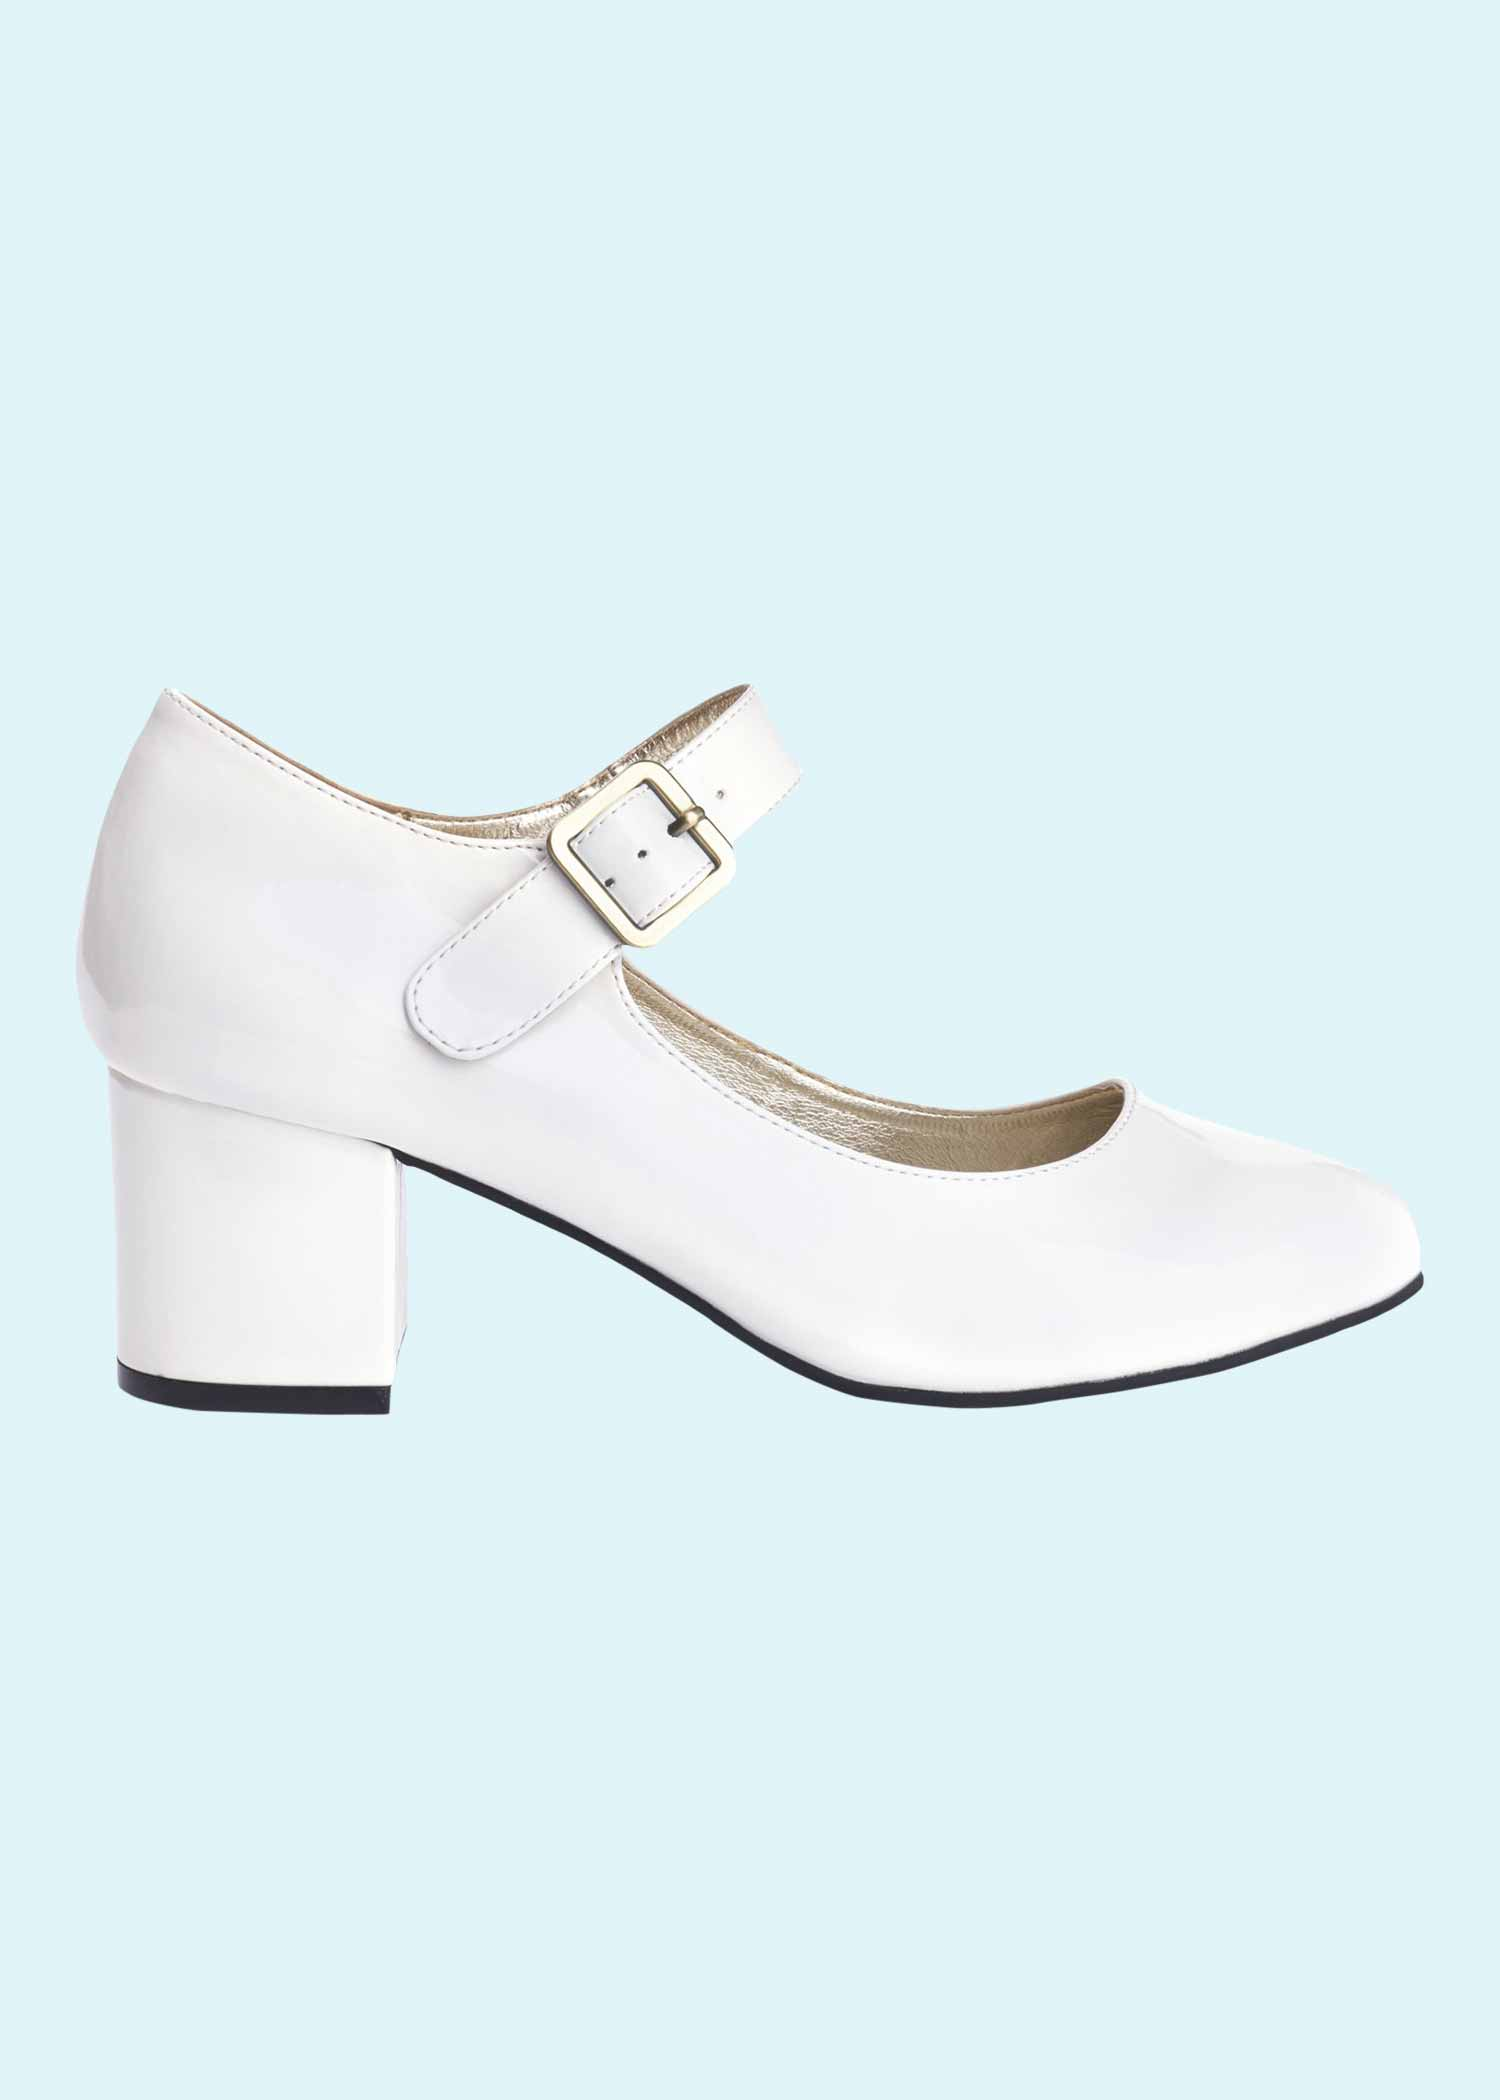 60s Mary Jane shoes in white lacquer from Lola Ramona